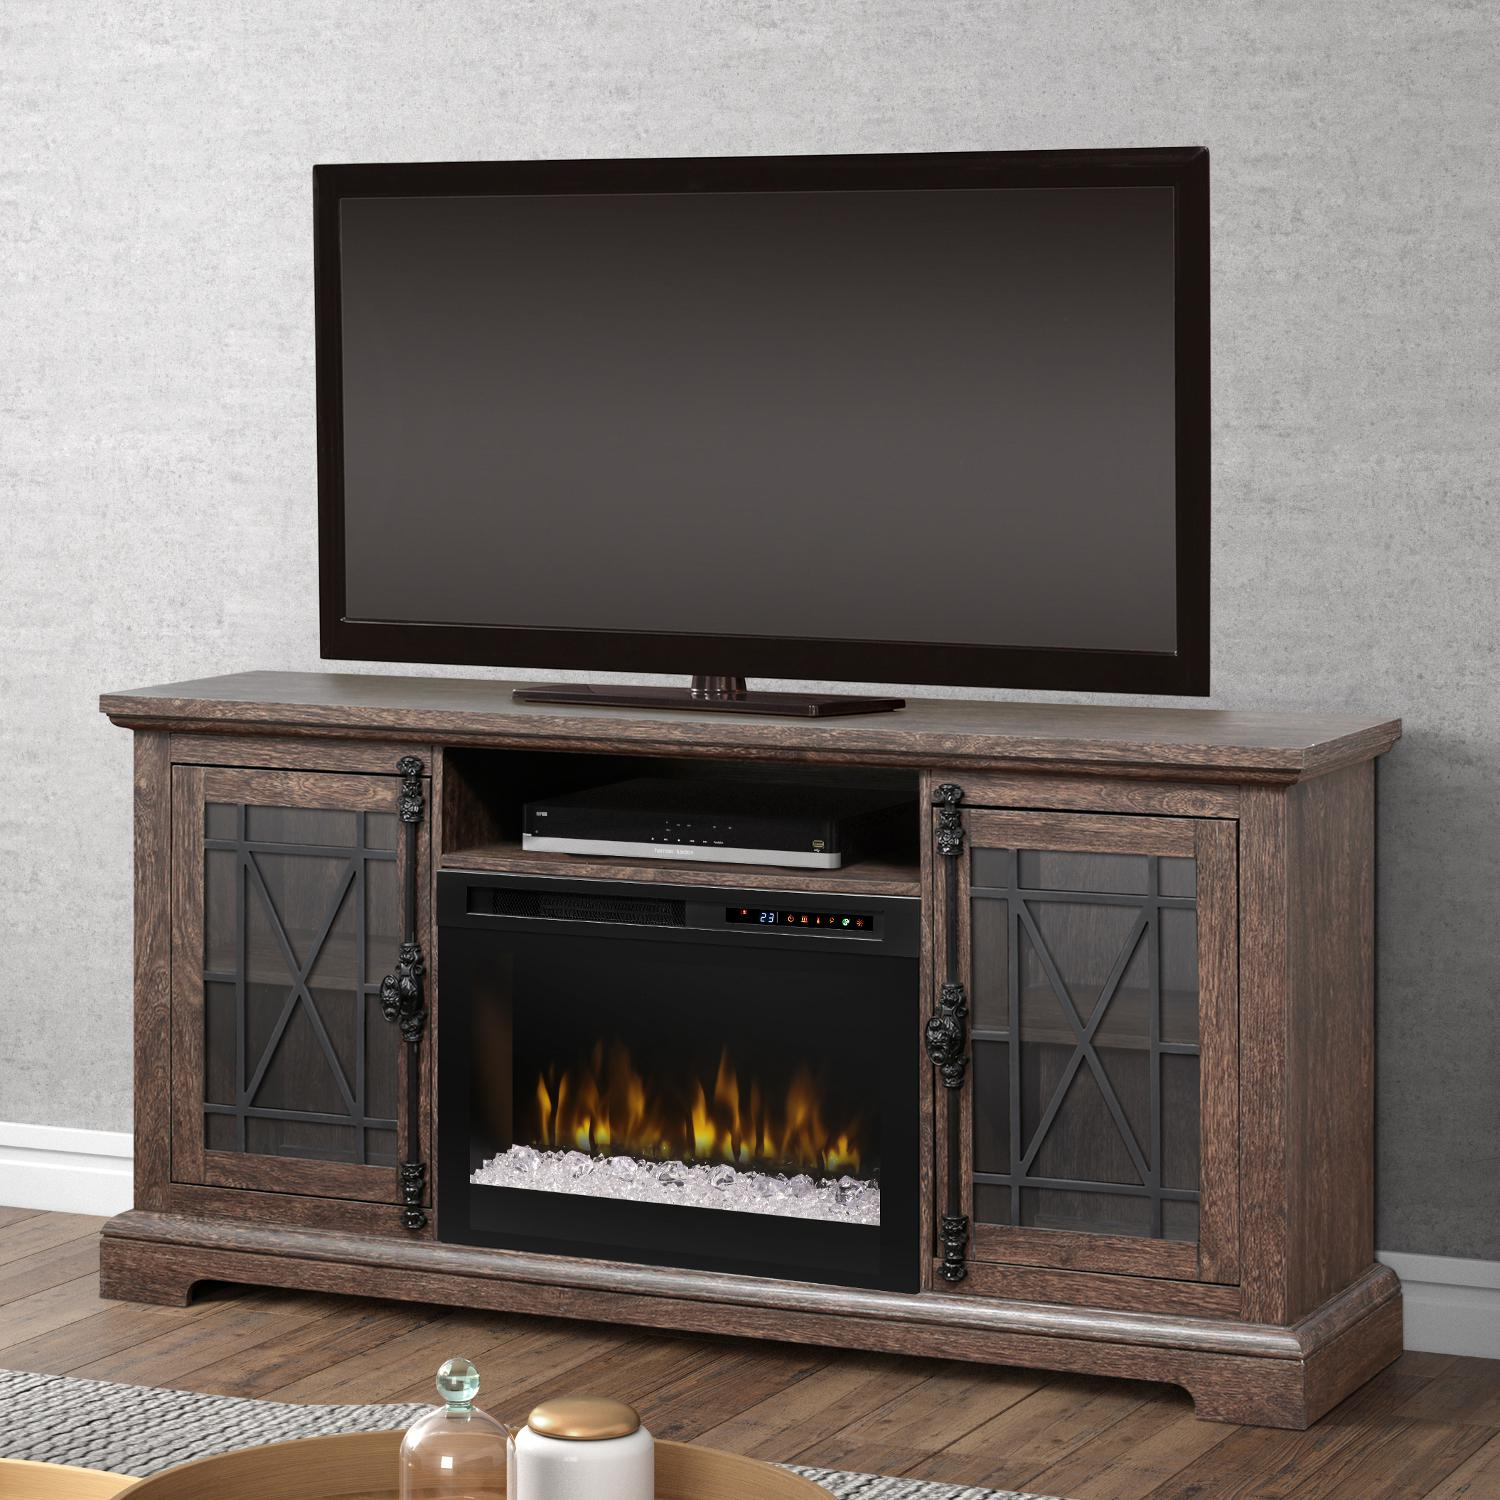 Dimplex Multi-Fire XHD Natalie 66-Inch Electric Fireplace...